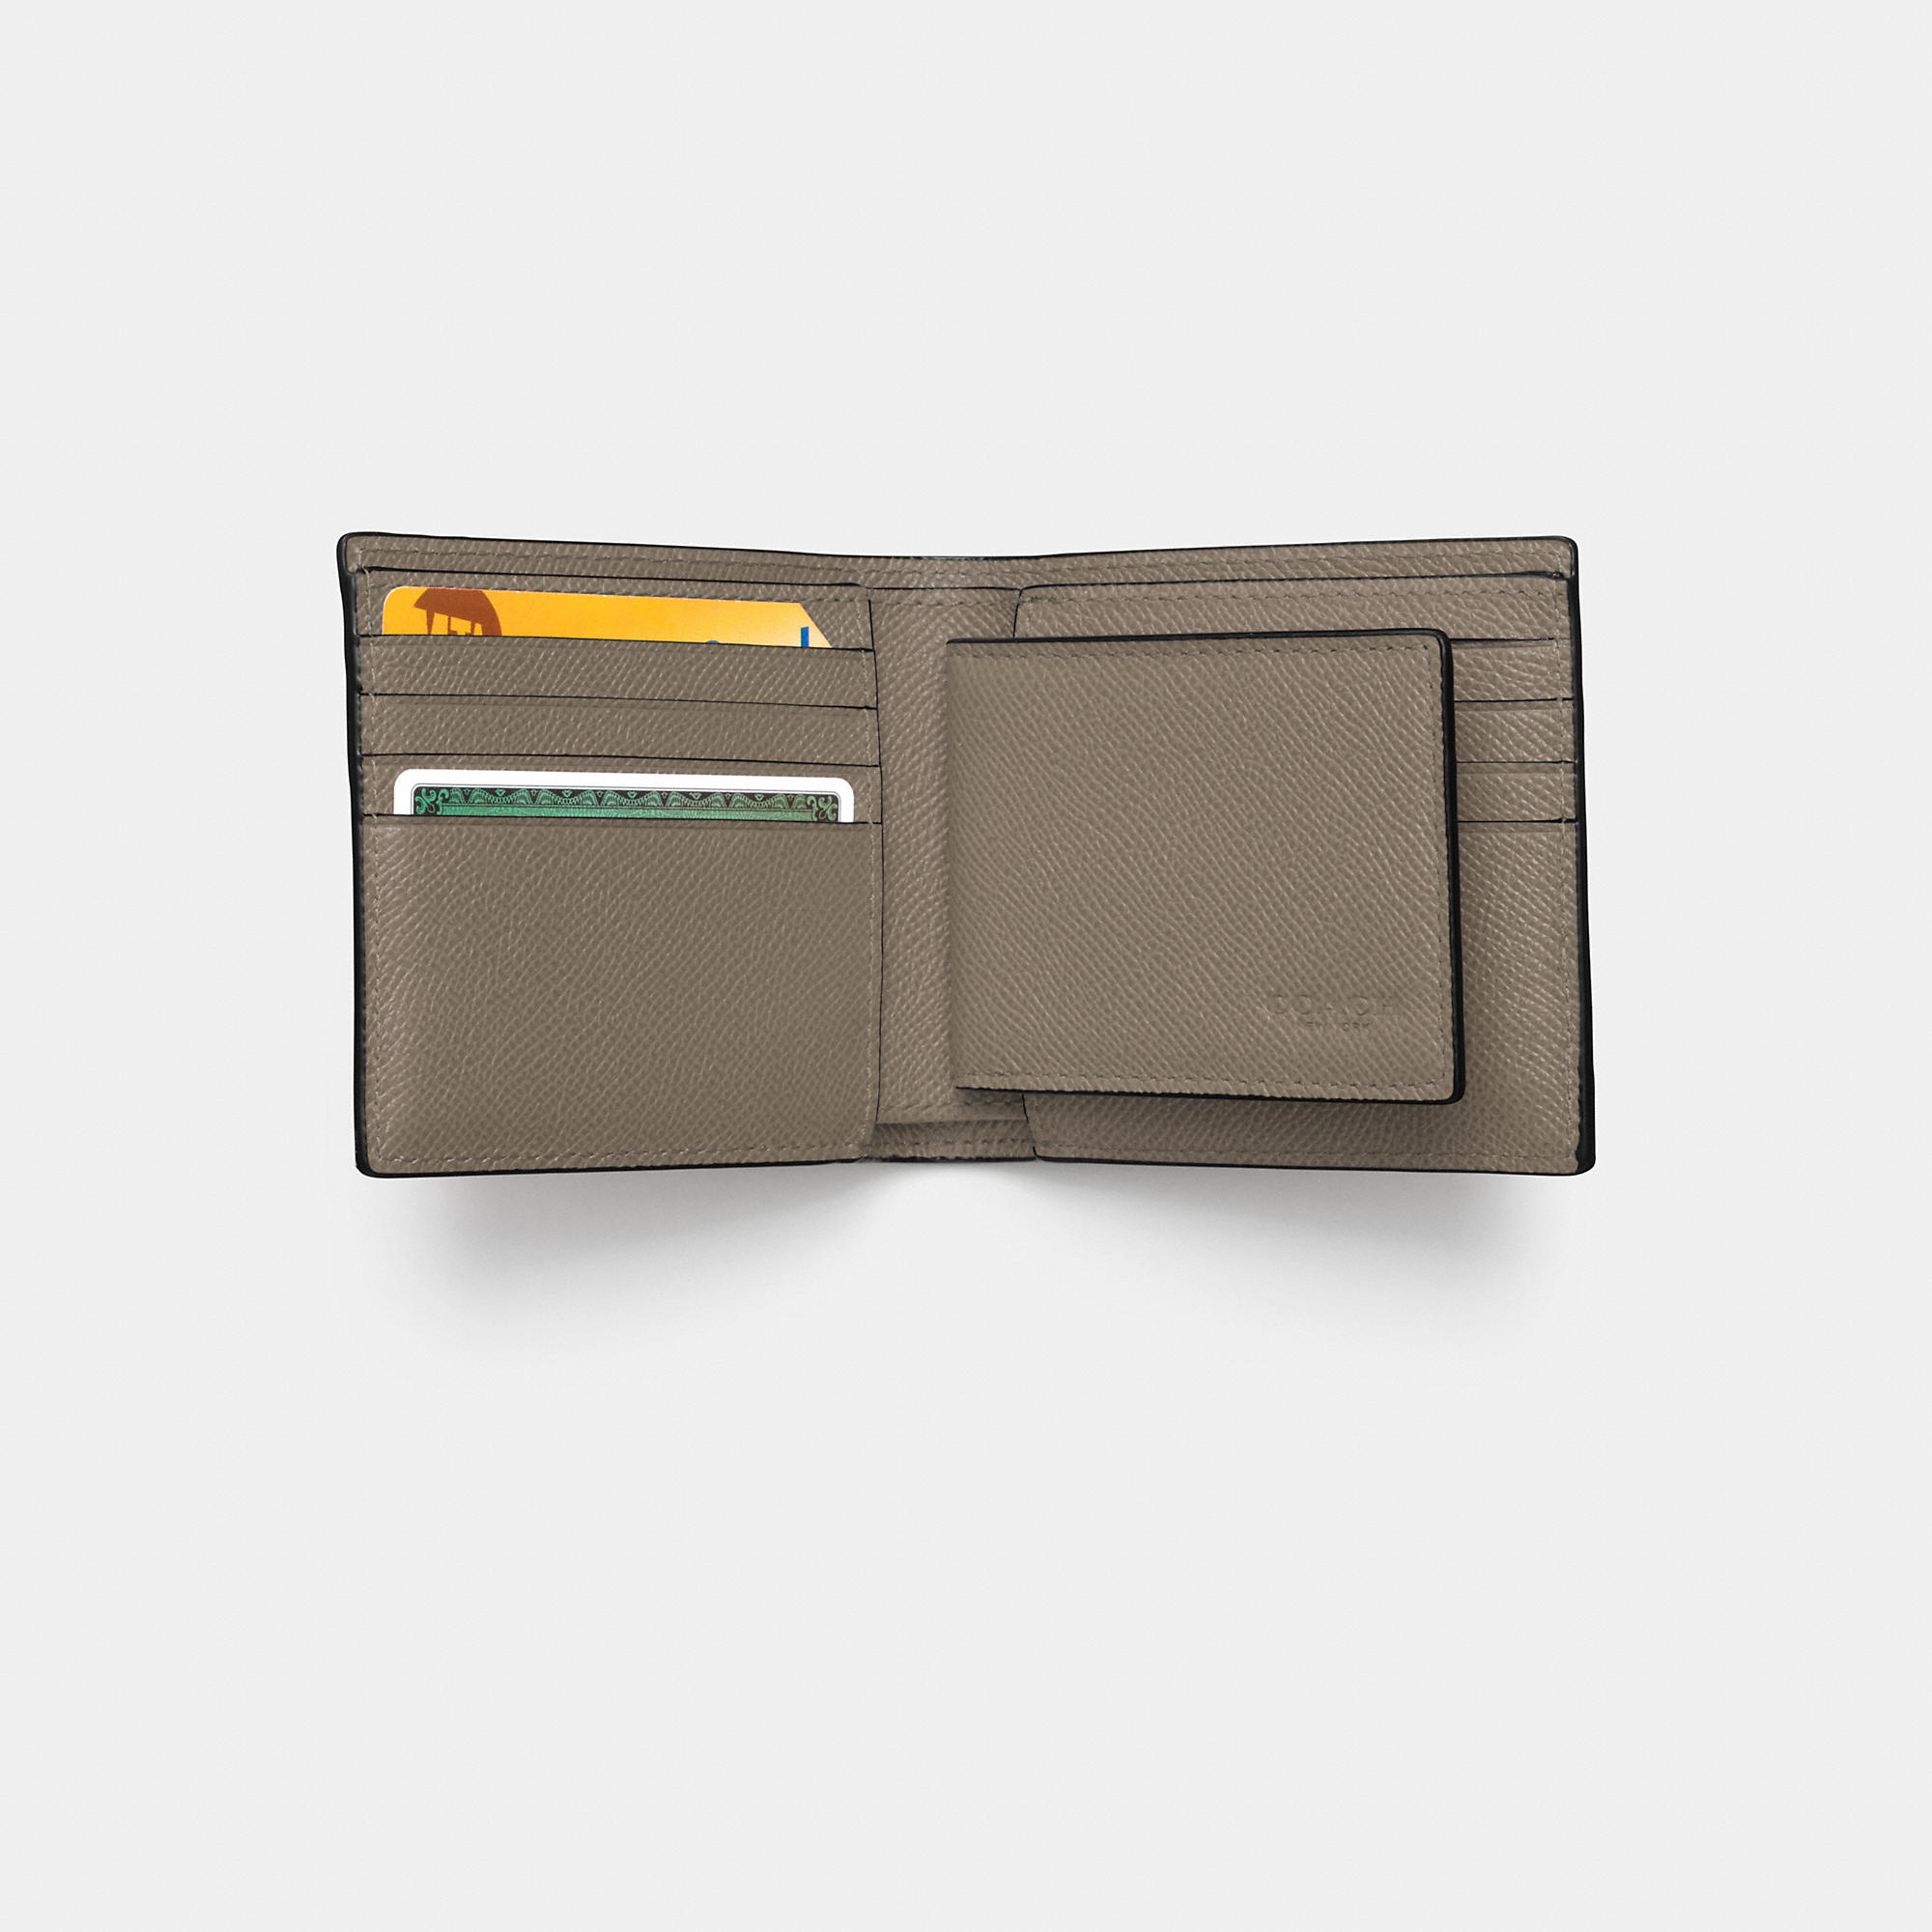 900a7affc796d Lyst - COACH Compact Id Wallet In Crossgrain Leather for Men